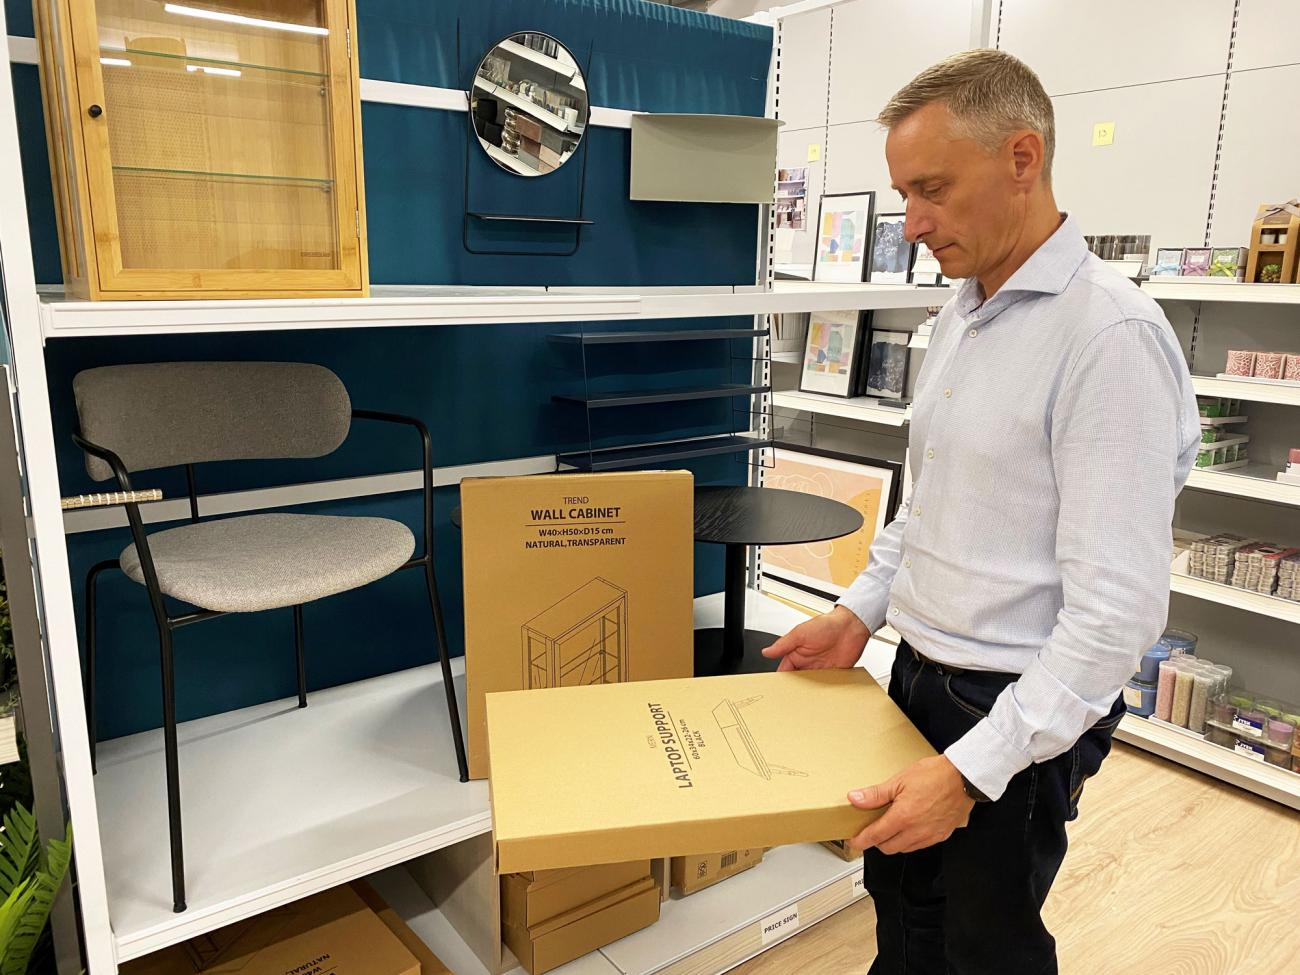 Lars Høgh Jensen, who is Packaging Development Specialist at JYSK, has taken the lead on the optimised packaging.